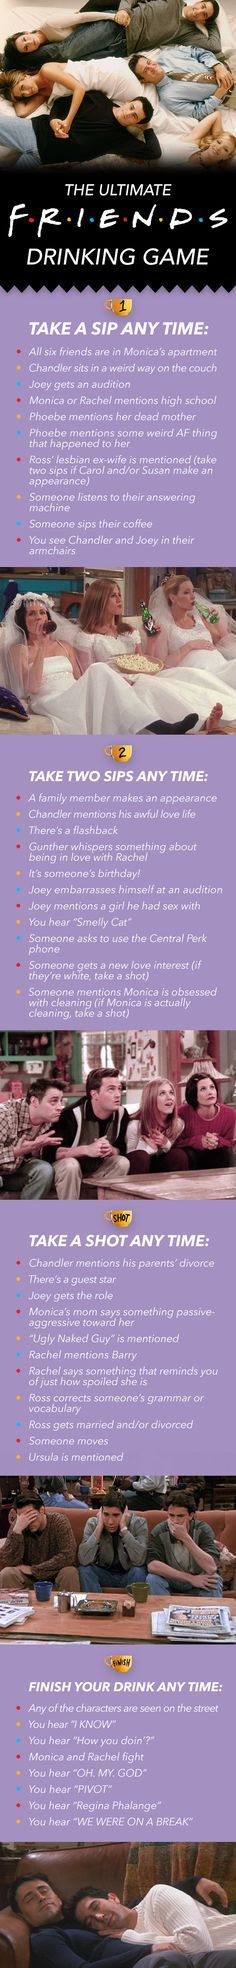 """The Ultimate """"Friends"""" Drinking Game...must show Jenny! Lol"""